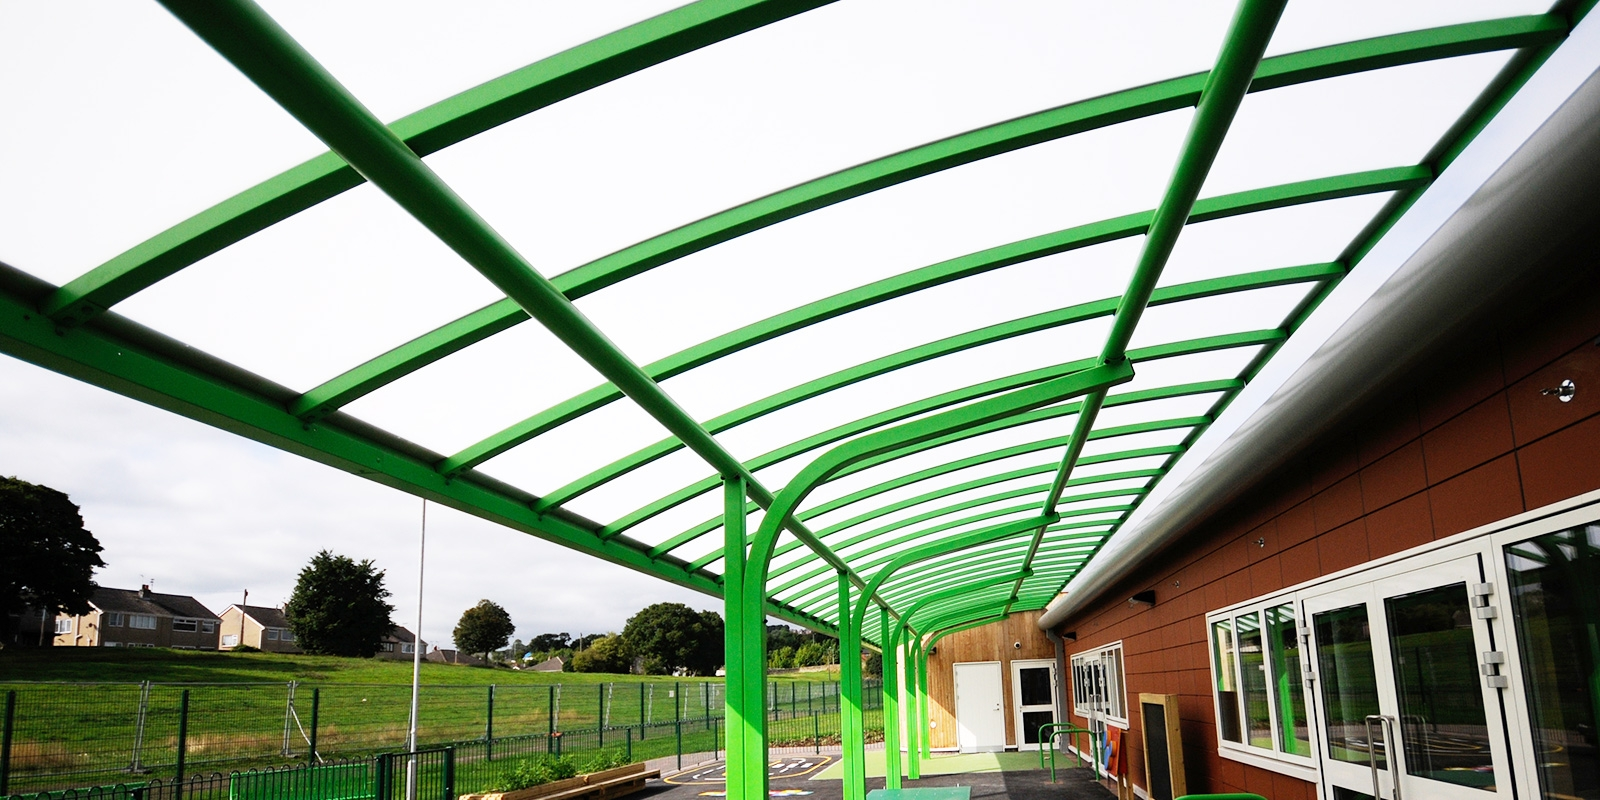 Green Cantilever School Canopy